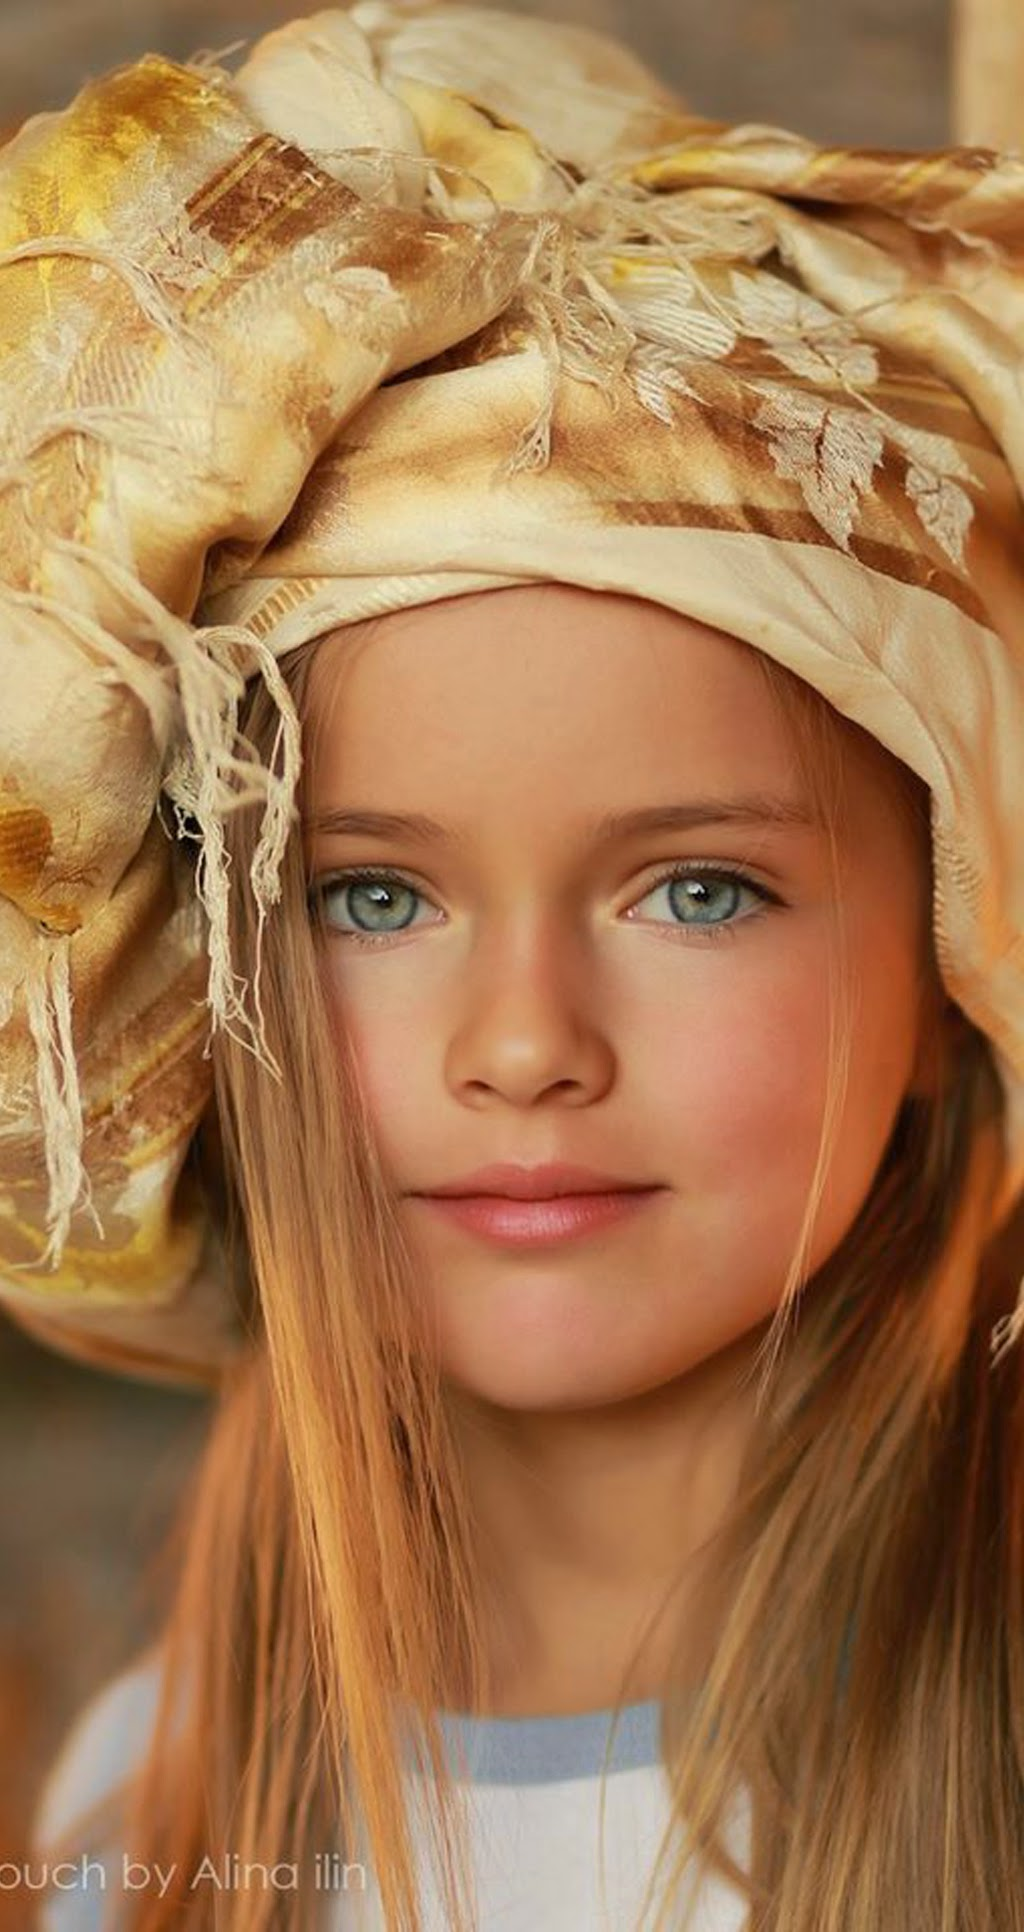 Image plus child model from russia kristina pimenova wallpaper plus child model from russia kristina pimenova wallpaper 1932 x 1024g thecheapjerseys Images